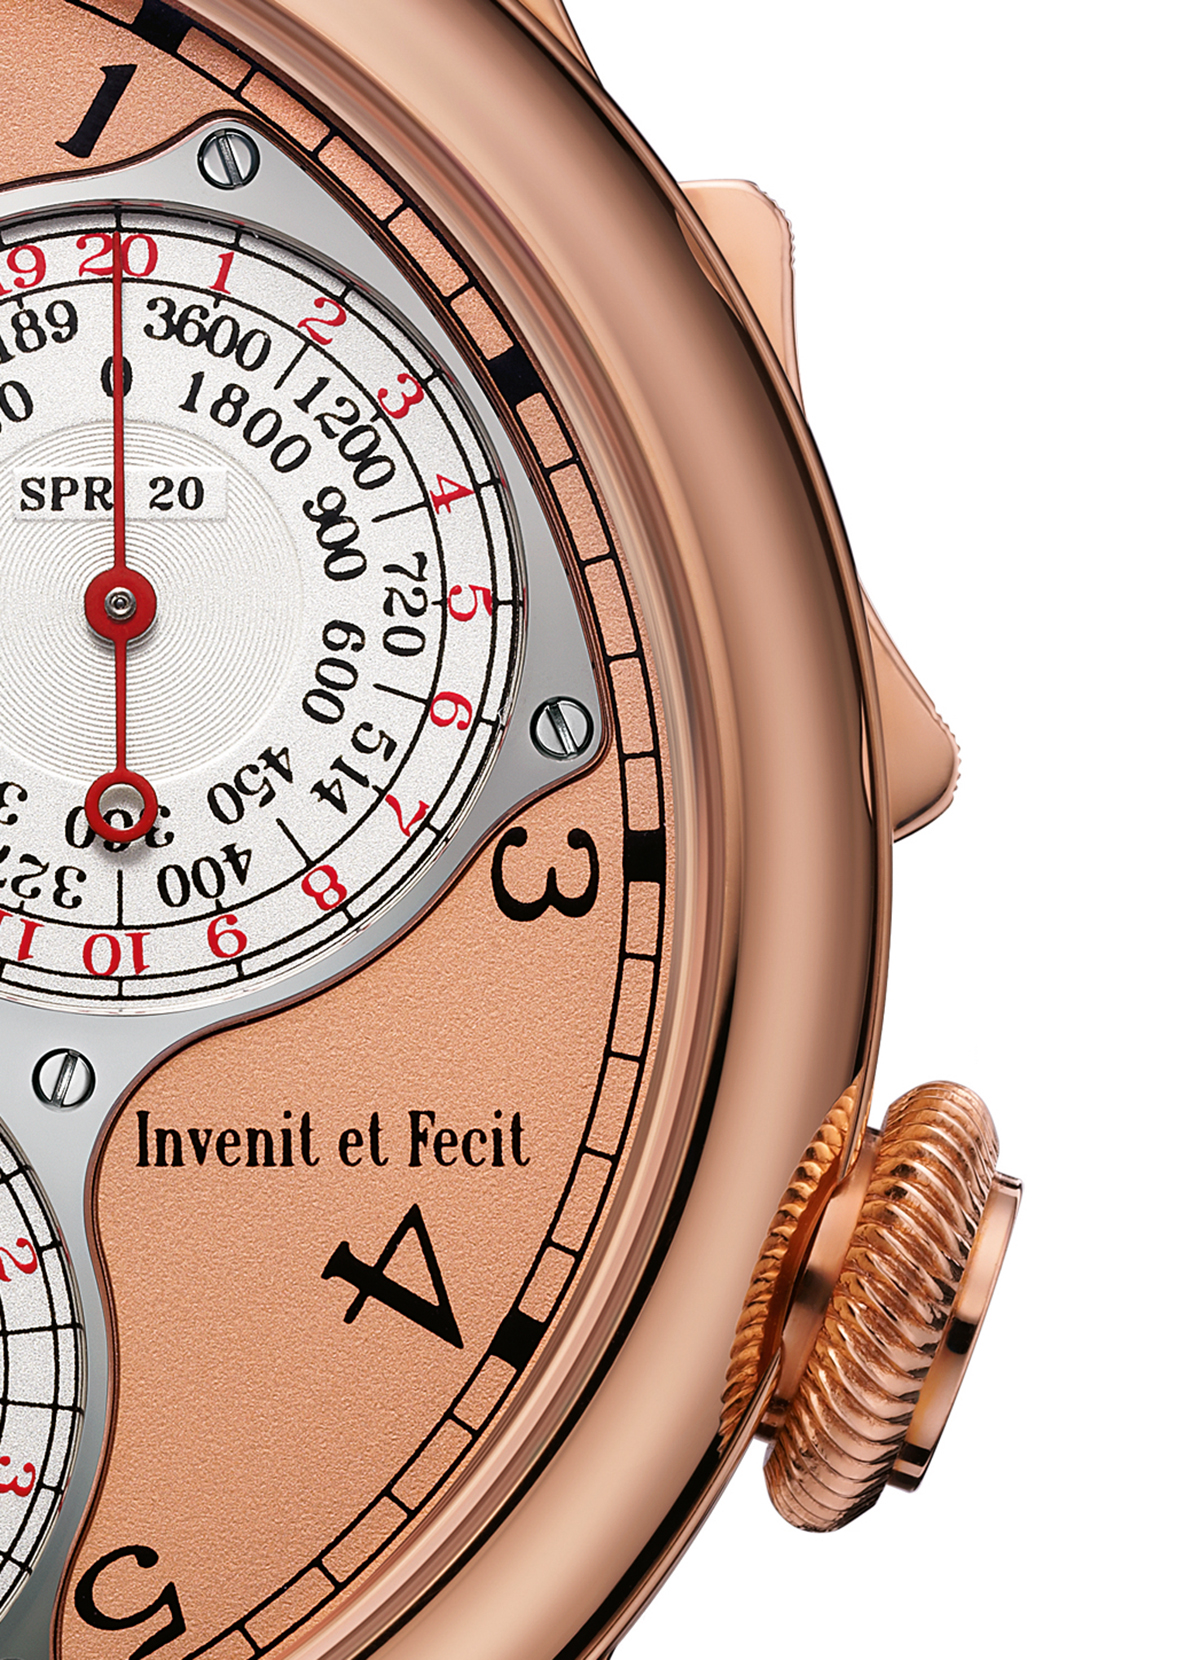 Detail showing the rocker at 2 o'clock for starting, stopping and resetting the chronograph, and the crown at 4 o'clock